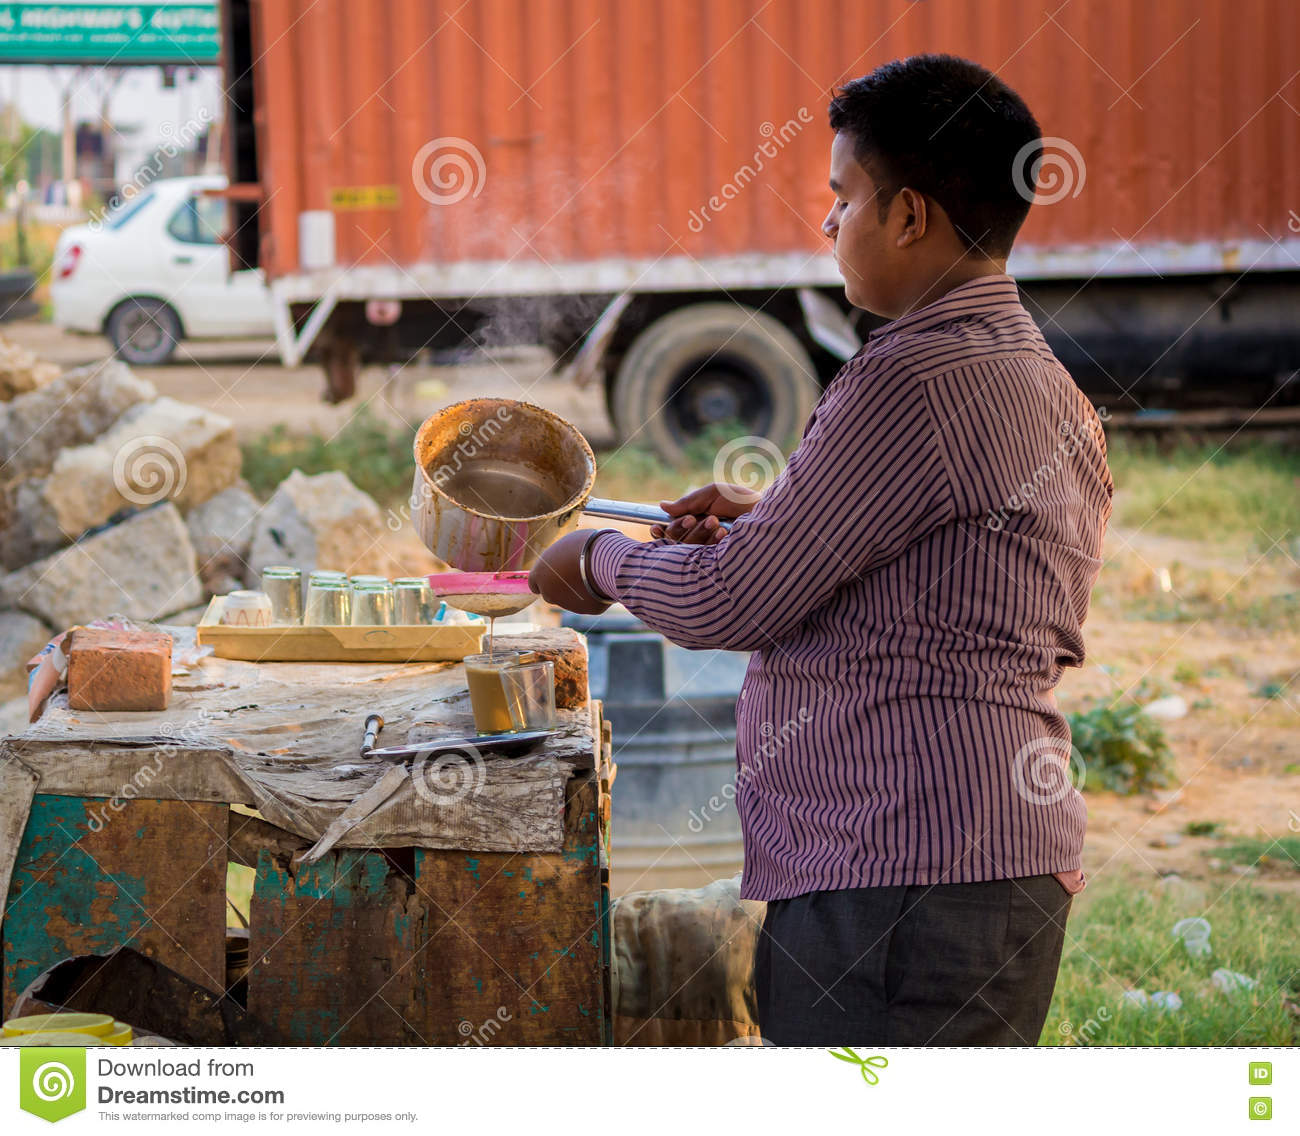 A young man making a tea